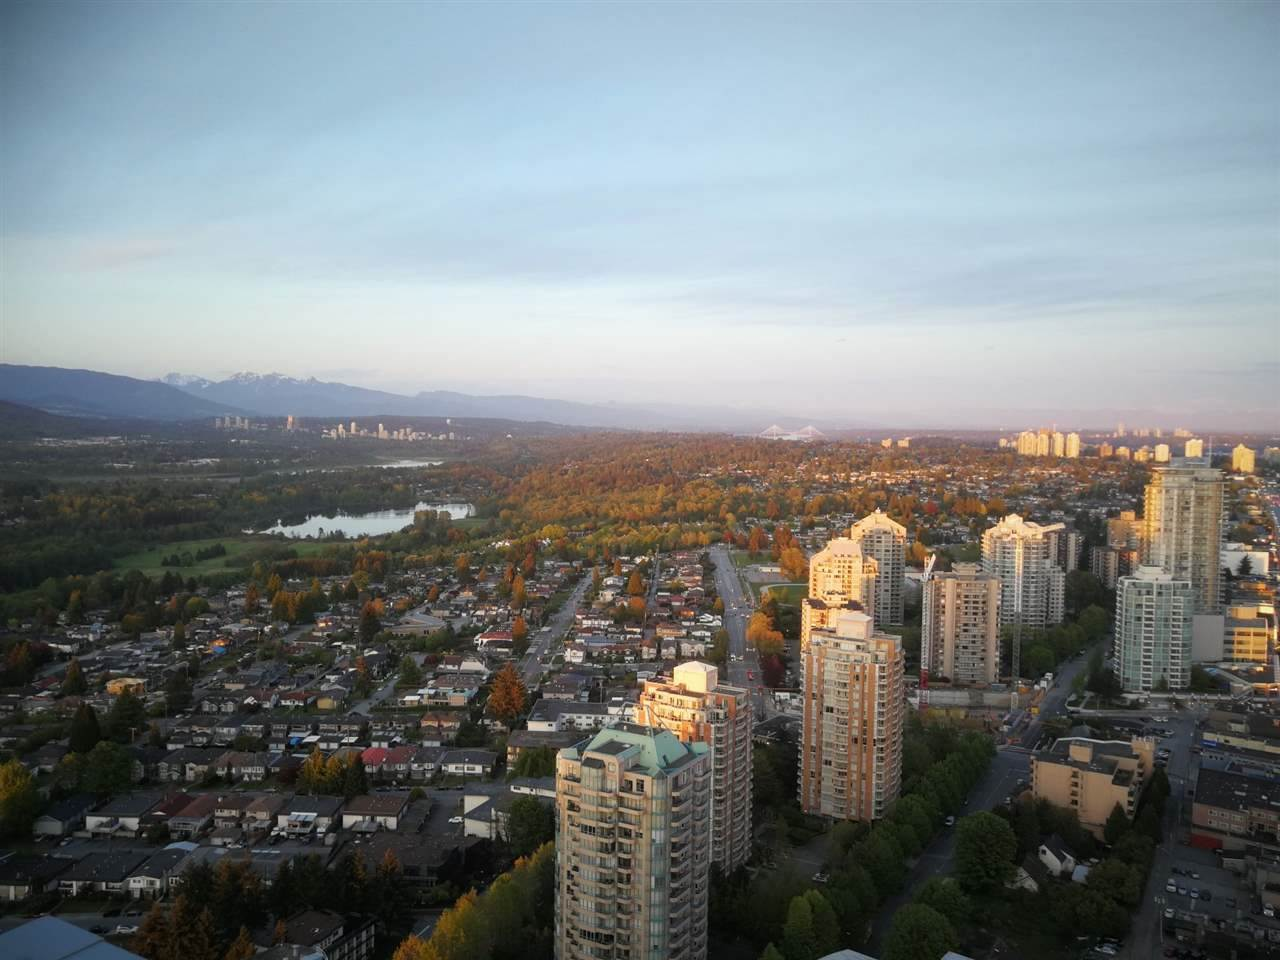 SWEET HOME OR INVESTMENT!! Rare North facing with stunning 270* view two bedrooms one bath unit in the Central Metrotown location, Sovereigh built by BOSA. Features include luxurious Miele stainless steel appliances, Kohler fixtures, Geothermal Central air conditioning etc. Overlooking Downtown, North Shore Mountains, ocean & English Bay. Residences is located above the prestigious Element Vancouver Hotel and enjoys plentiful amenities, and private concierge services. Steps away from restaurants, Crystal Mall, Metrotown, Central Library and major transportation hub. SPECTACULAR VIEW & GREAT LOCATION! Don't miss it!